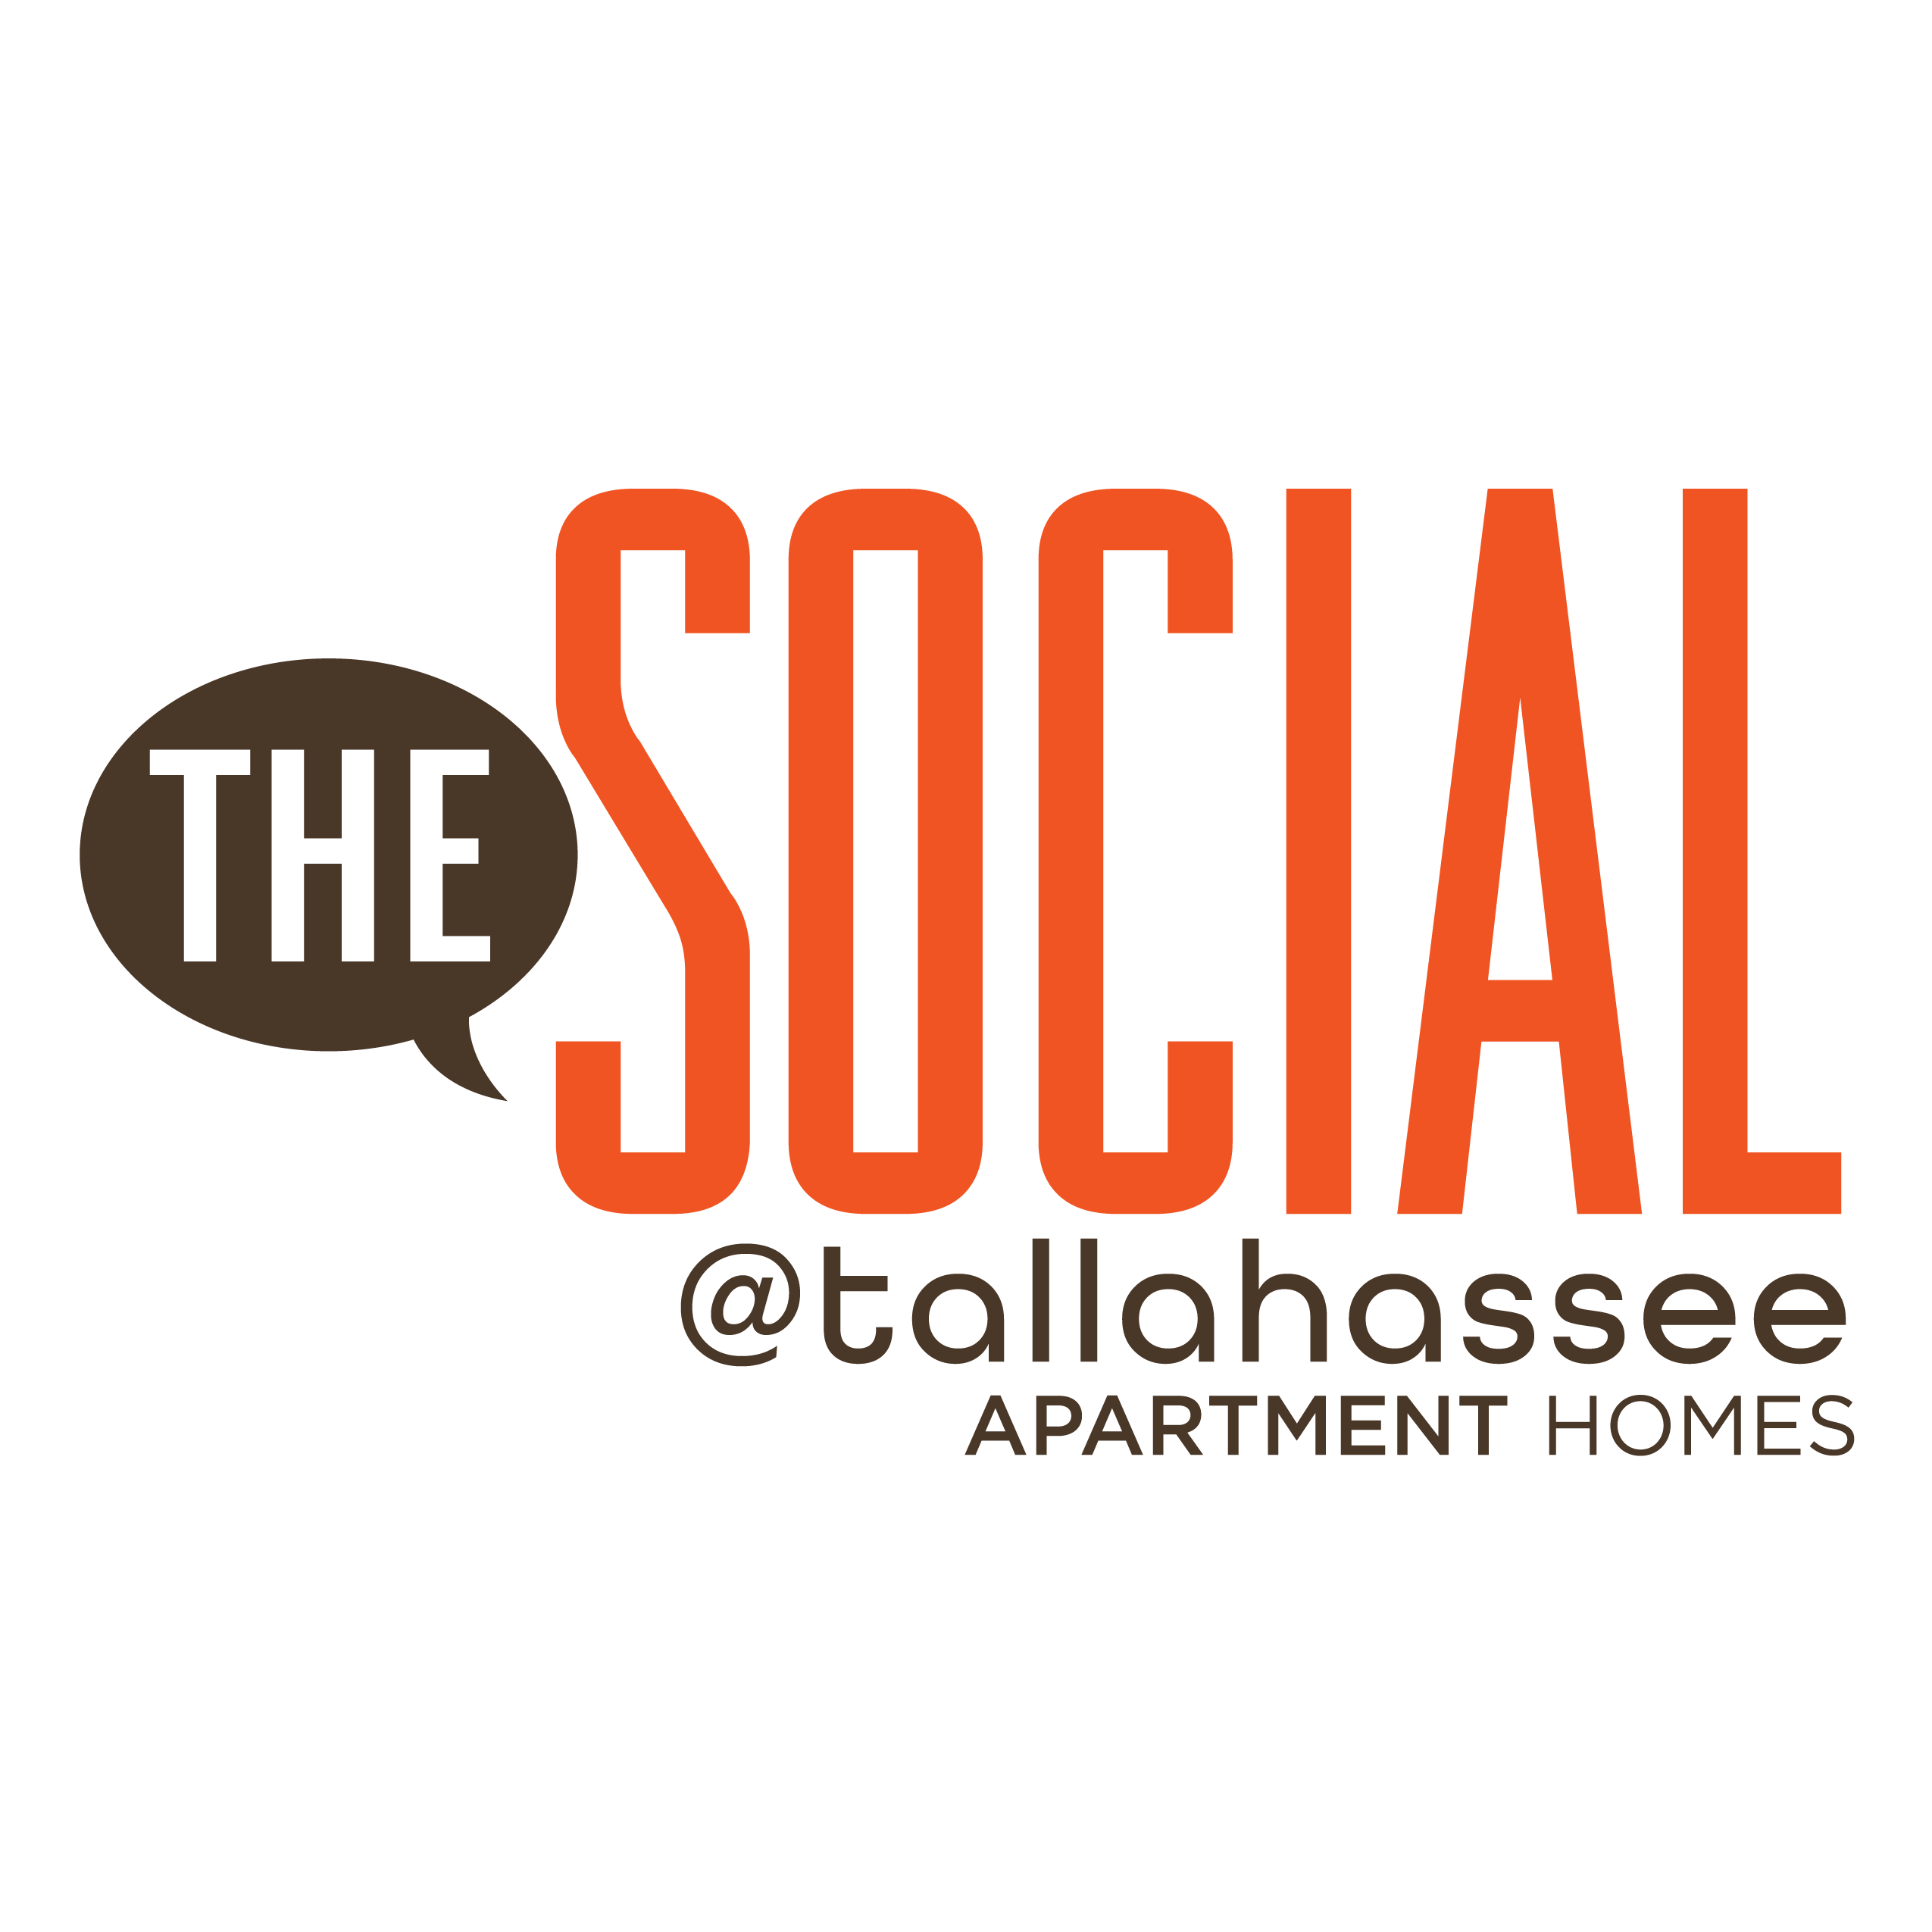 The Social @ Tallahassee Apartment Homes